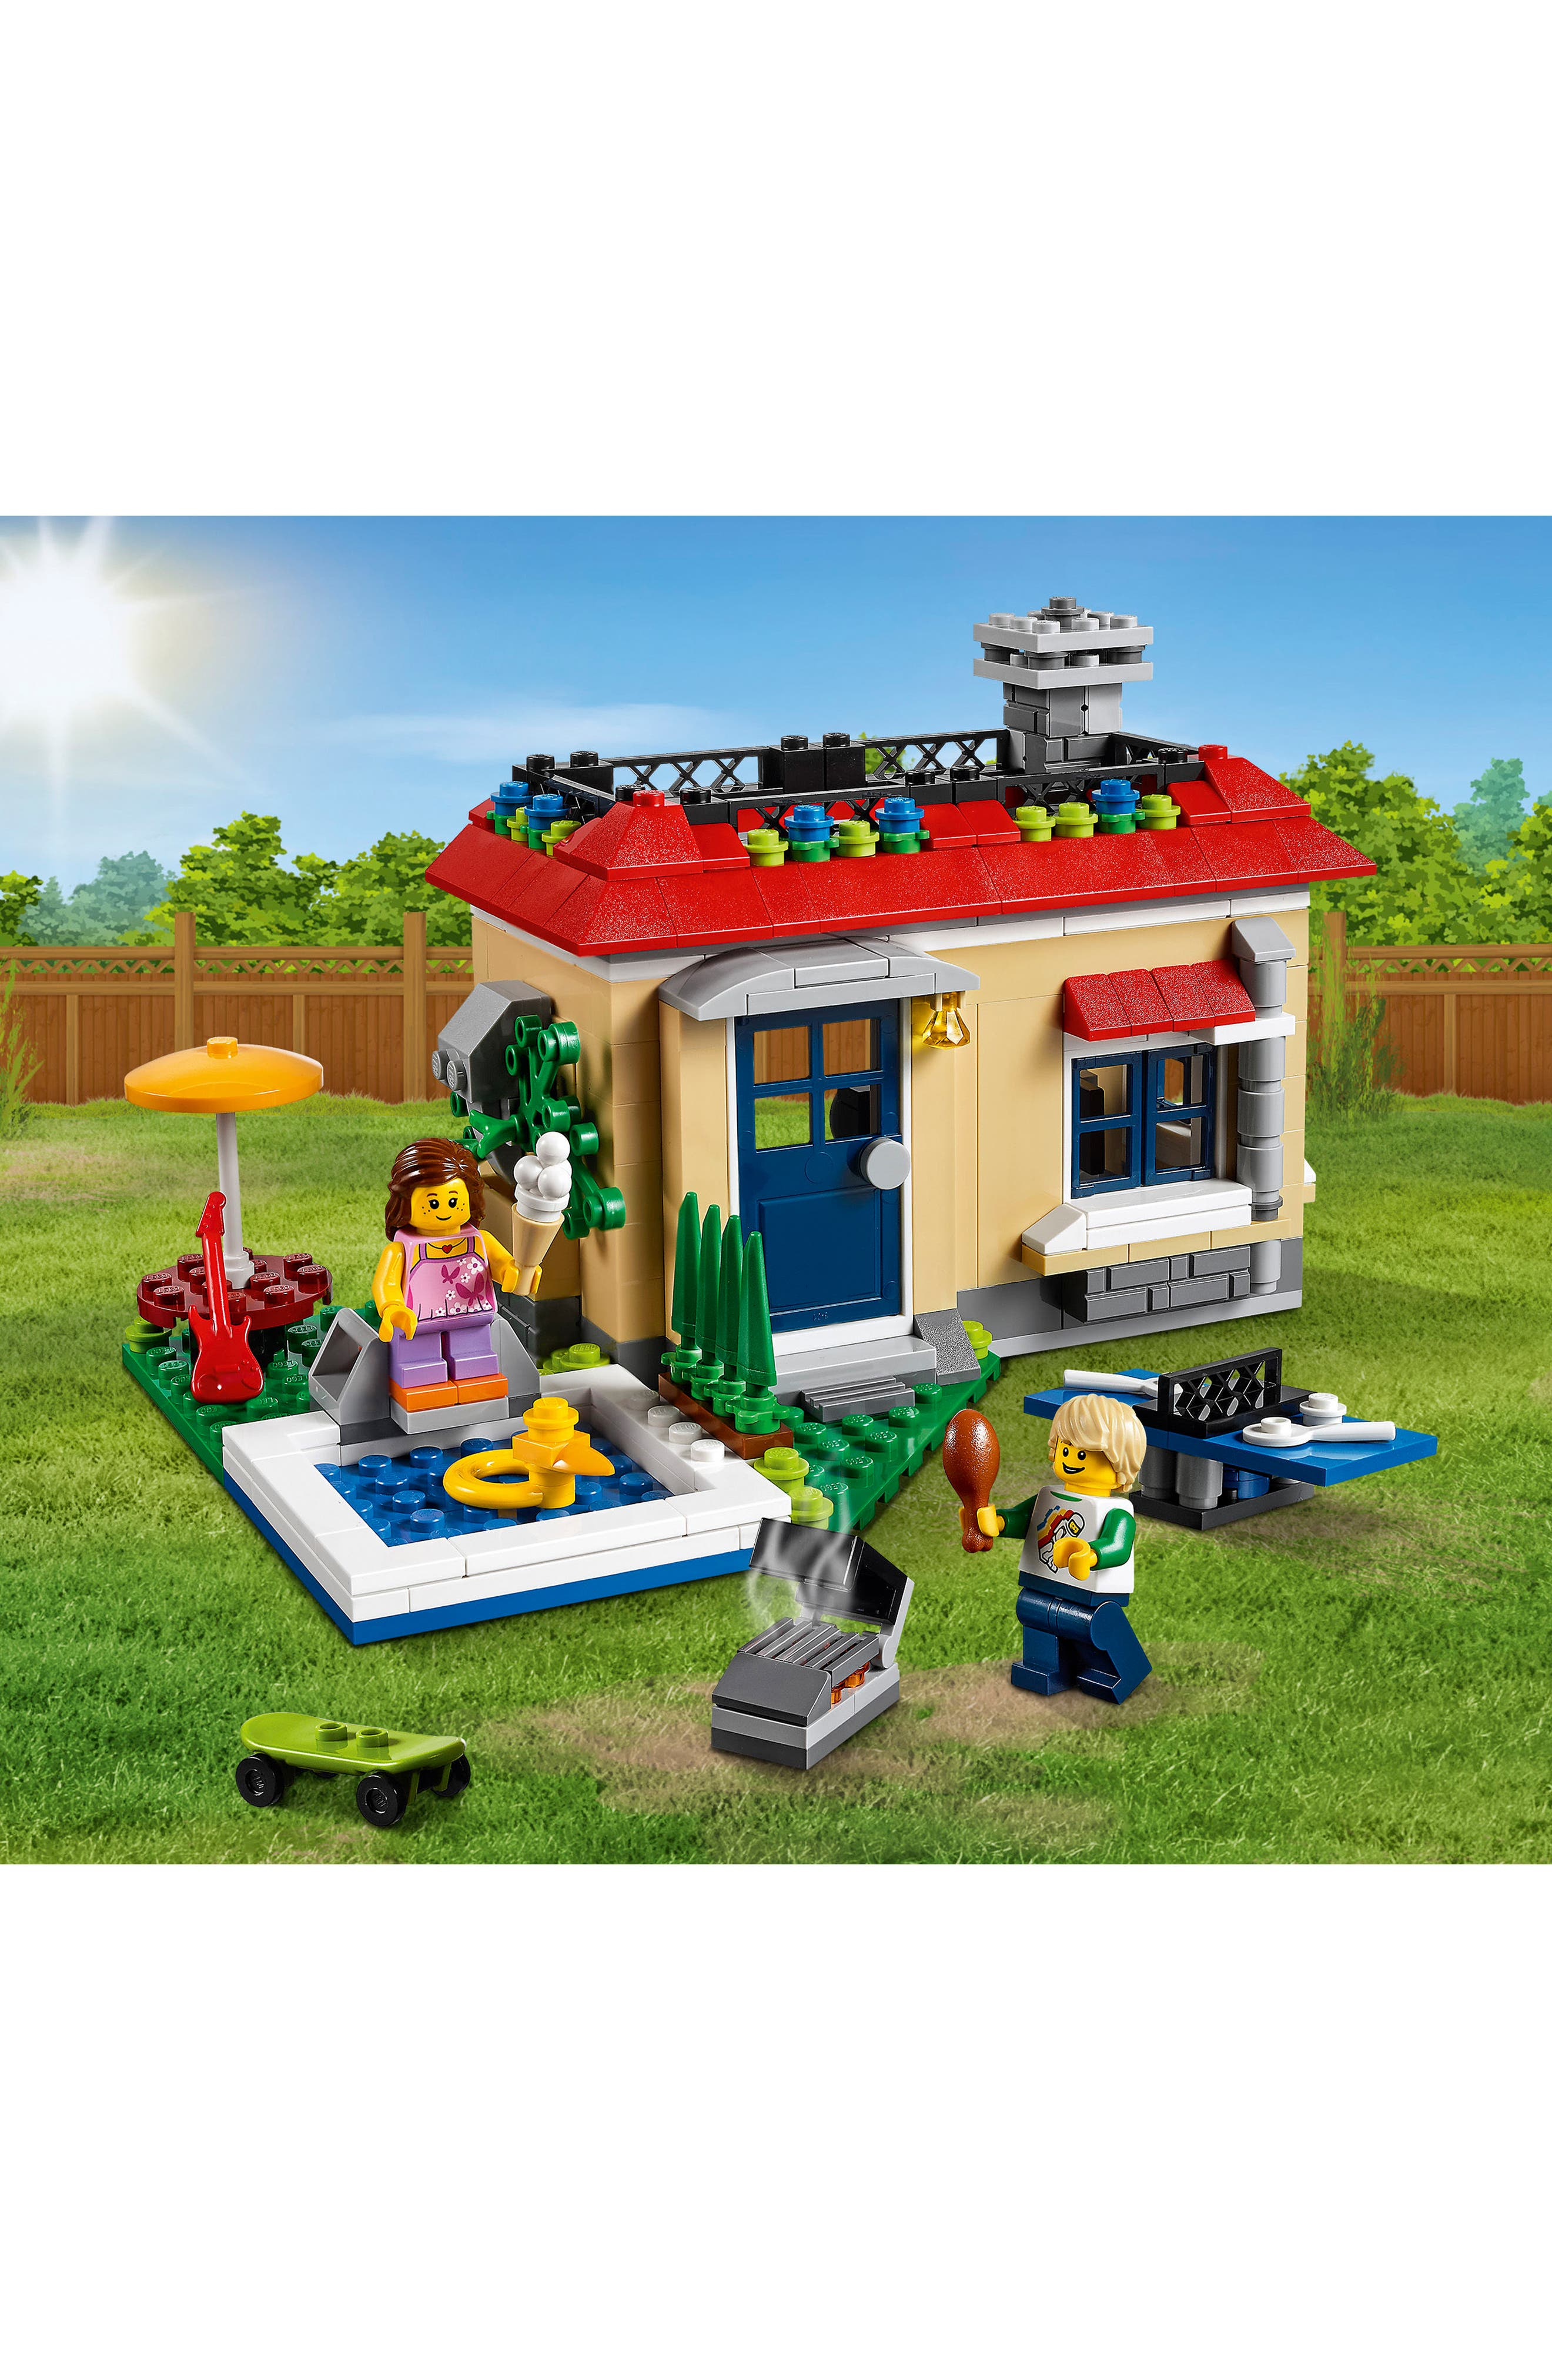 Creator 3-in-1 Modular Poolside Holiday Play Set - 31067,                             Alternate thumbnail 4, color,                             250